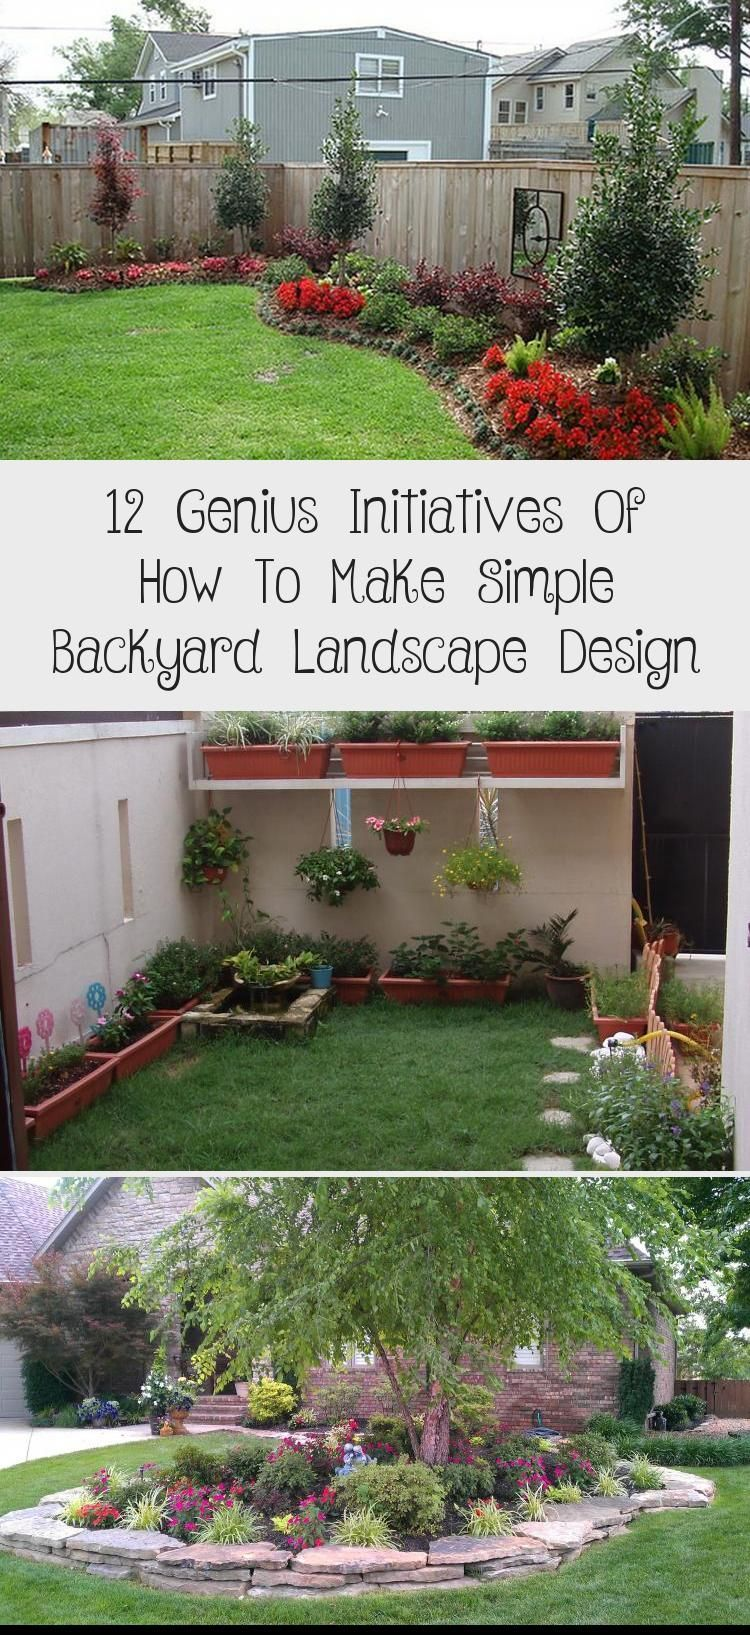 Simple Backyard Landscape Designs Home Design Pertaining To 12 Genius Initiative In 2020 With Images Backyard Landscaping Designs Backyard Landscaping Garden Landscape Design